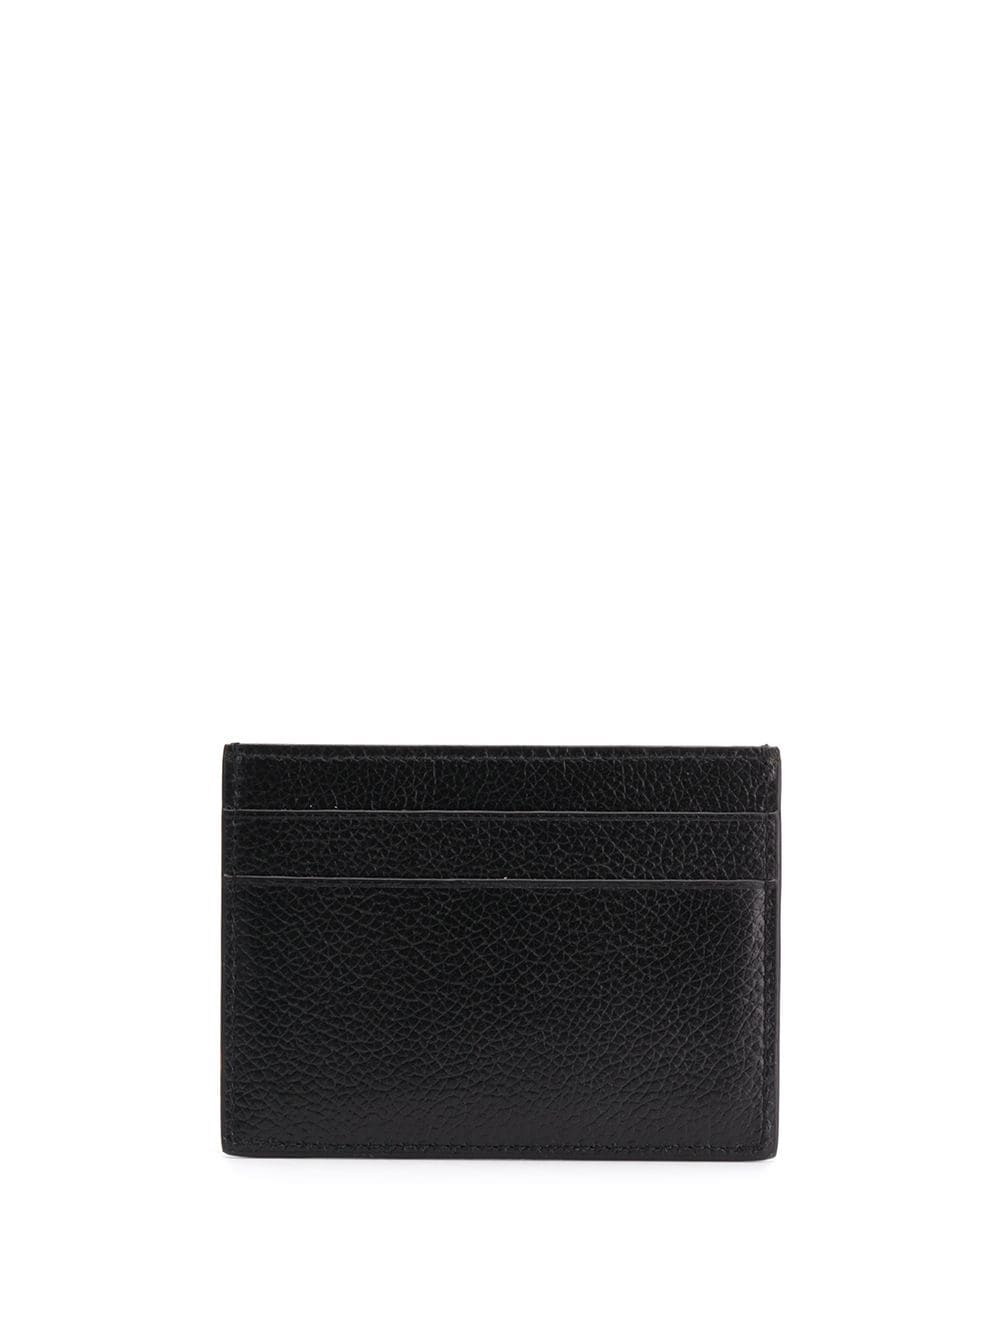 BALENCIAGA Logo Card Holder Black